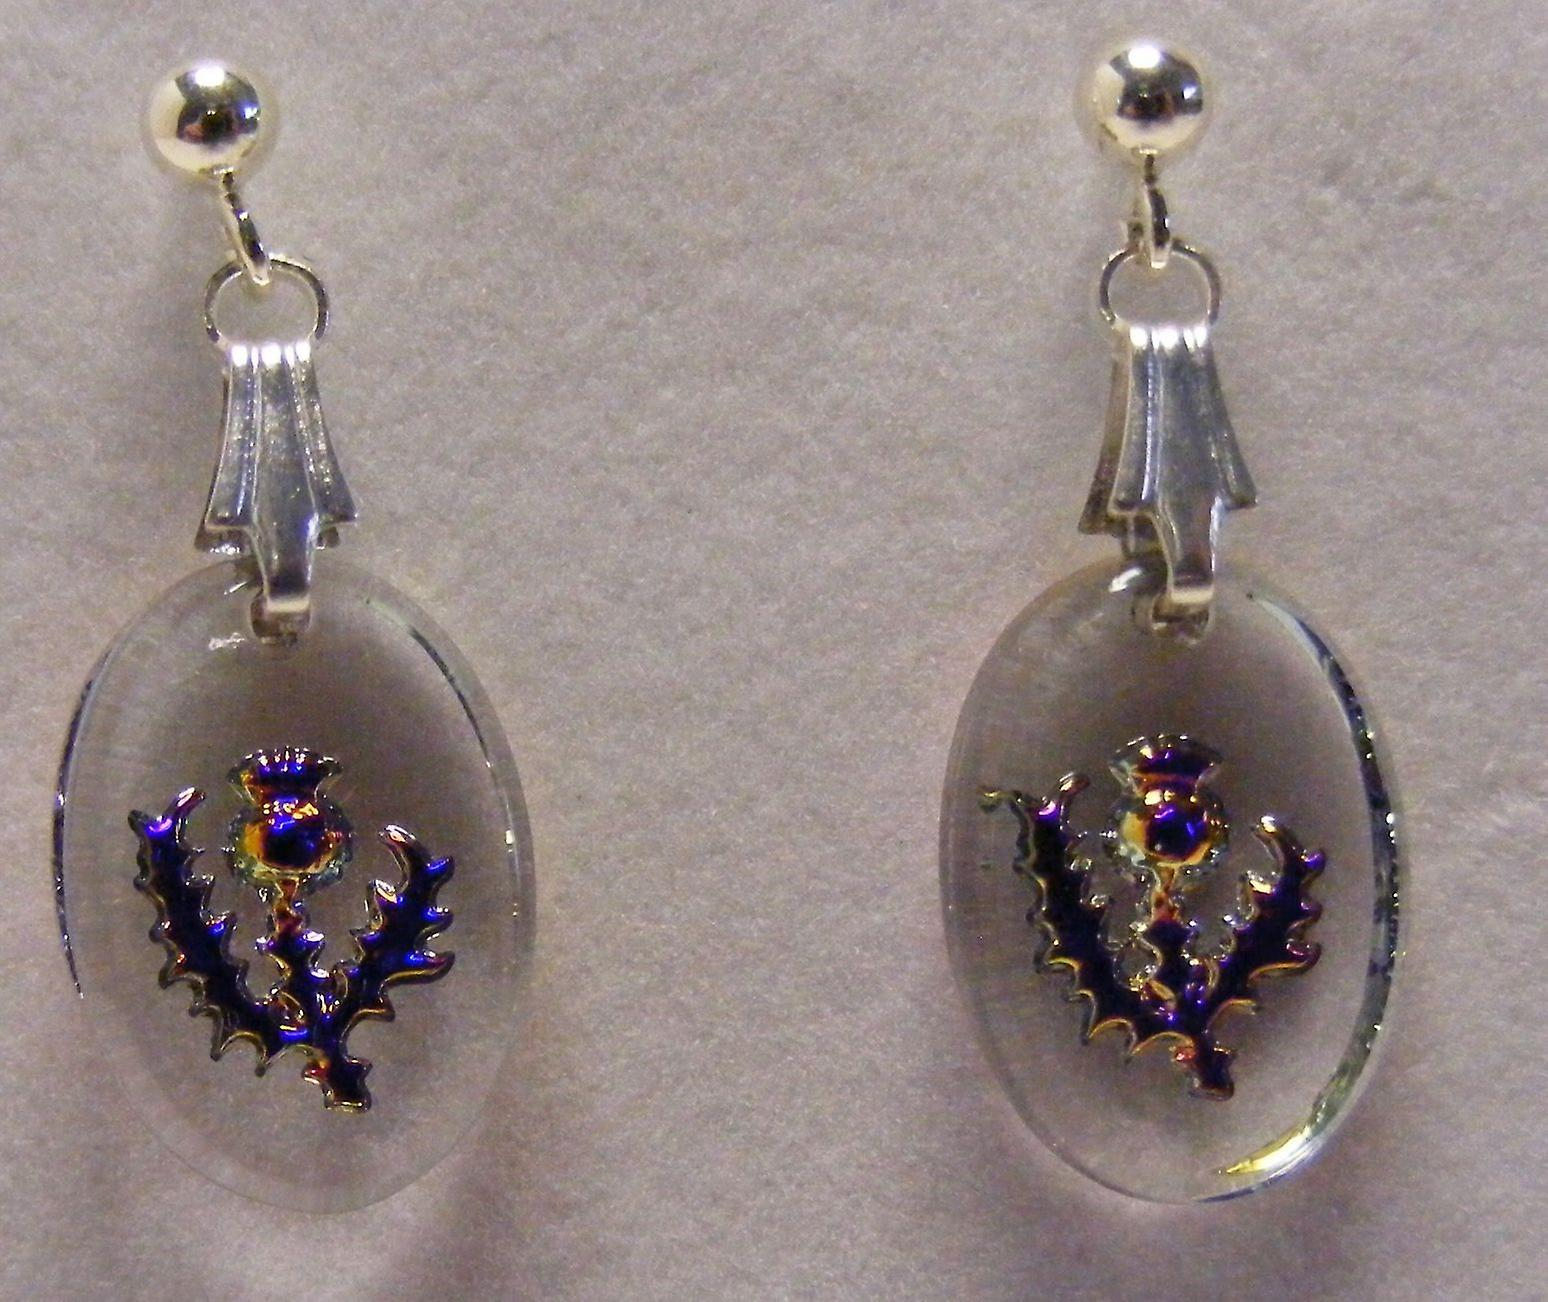 Heliotrope Thistle Oval Earrings and Small Pendant set